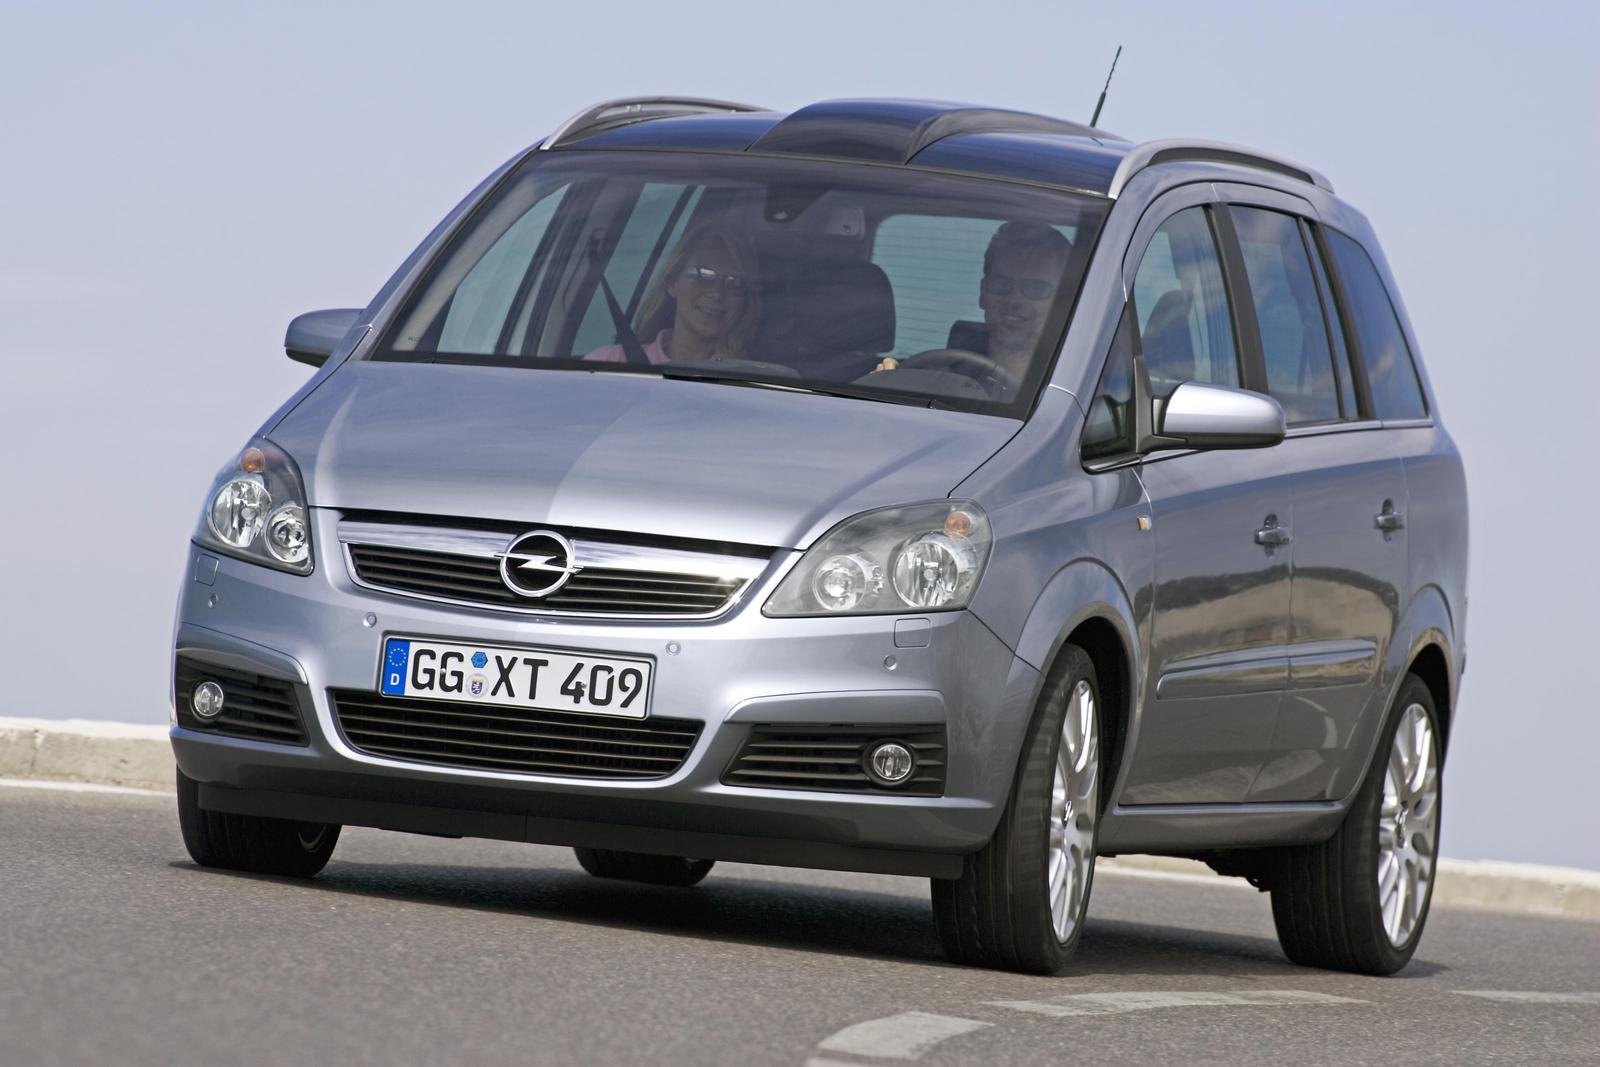 2007 opel zafira picture 163264 car review top speed. Black Bedroom Furniture Sets. Home Design Ideas